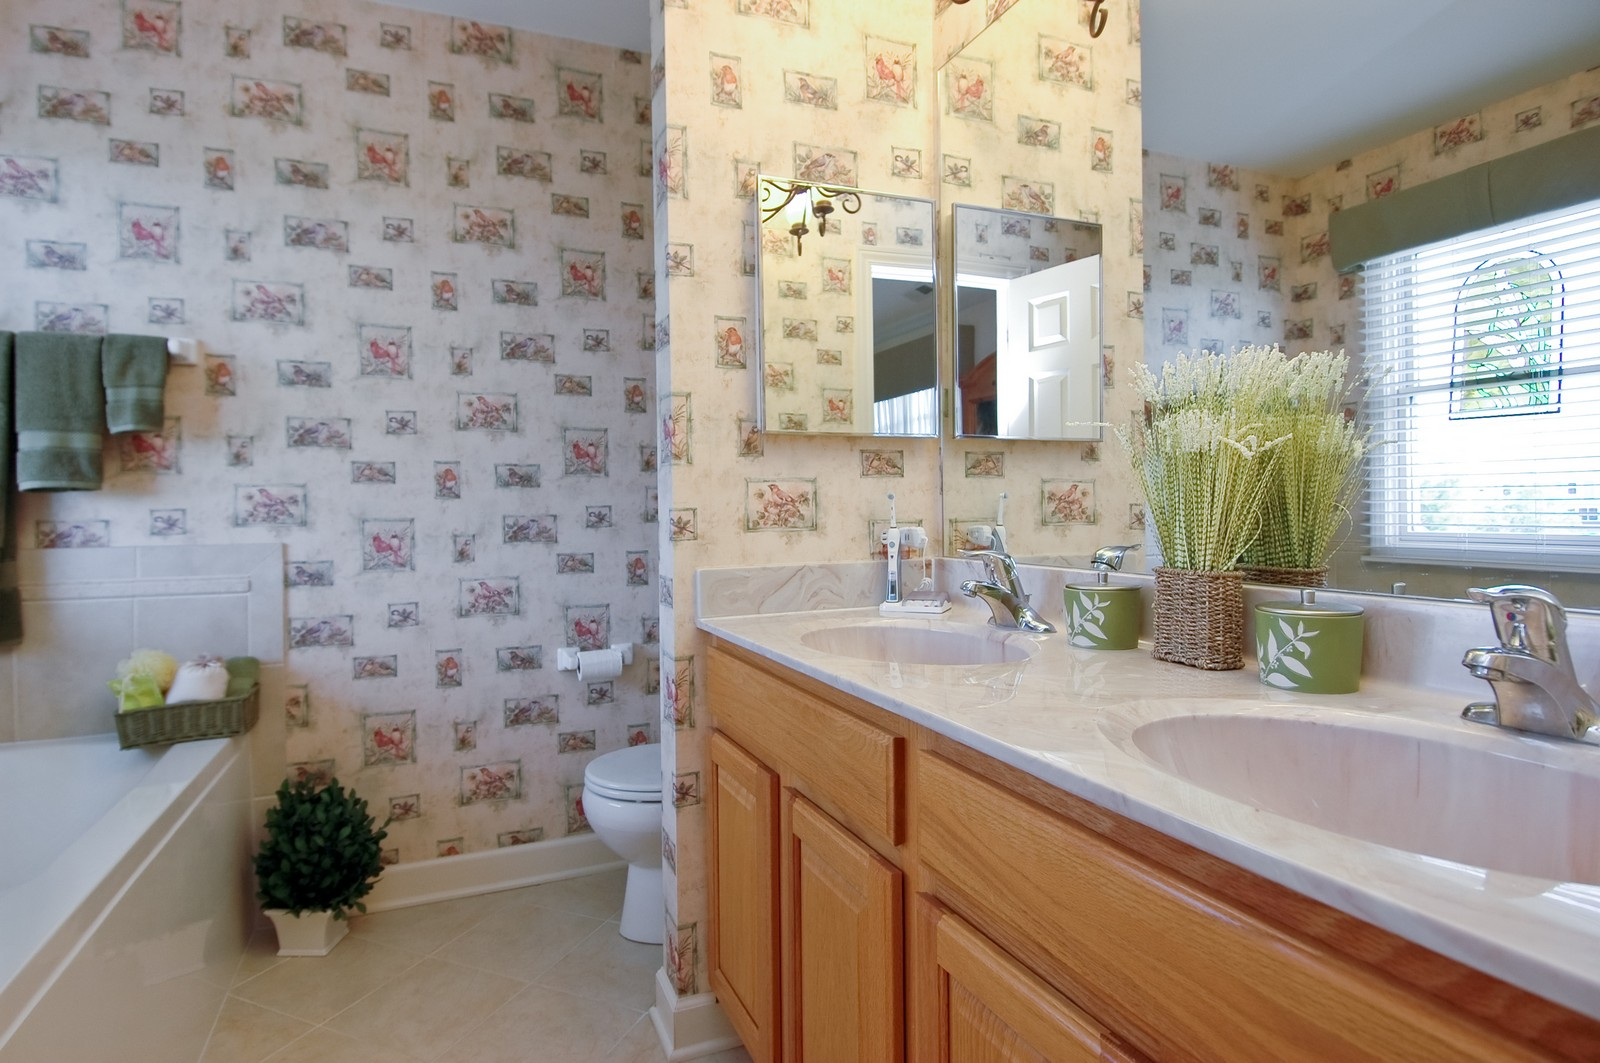 Real Estate Photography - 8337 Raptor, Lakewood, IL, 60014 - Master Bathroom